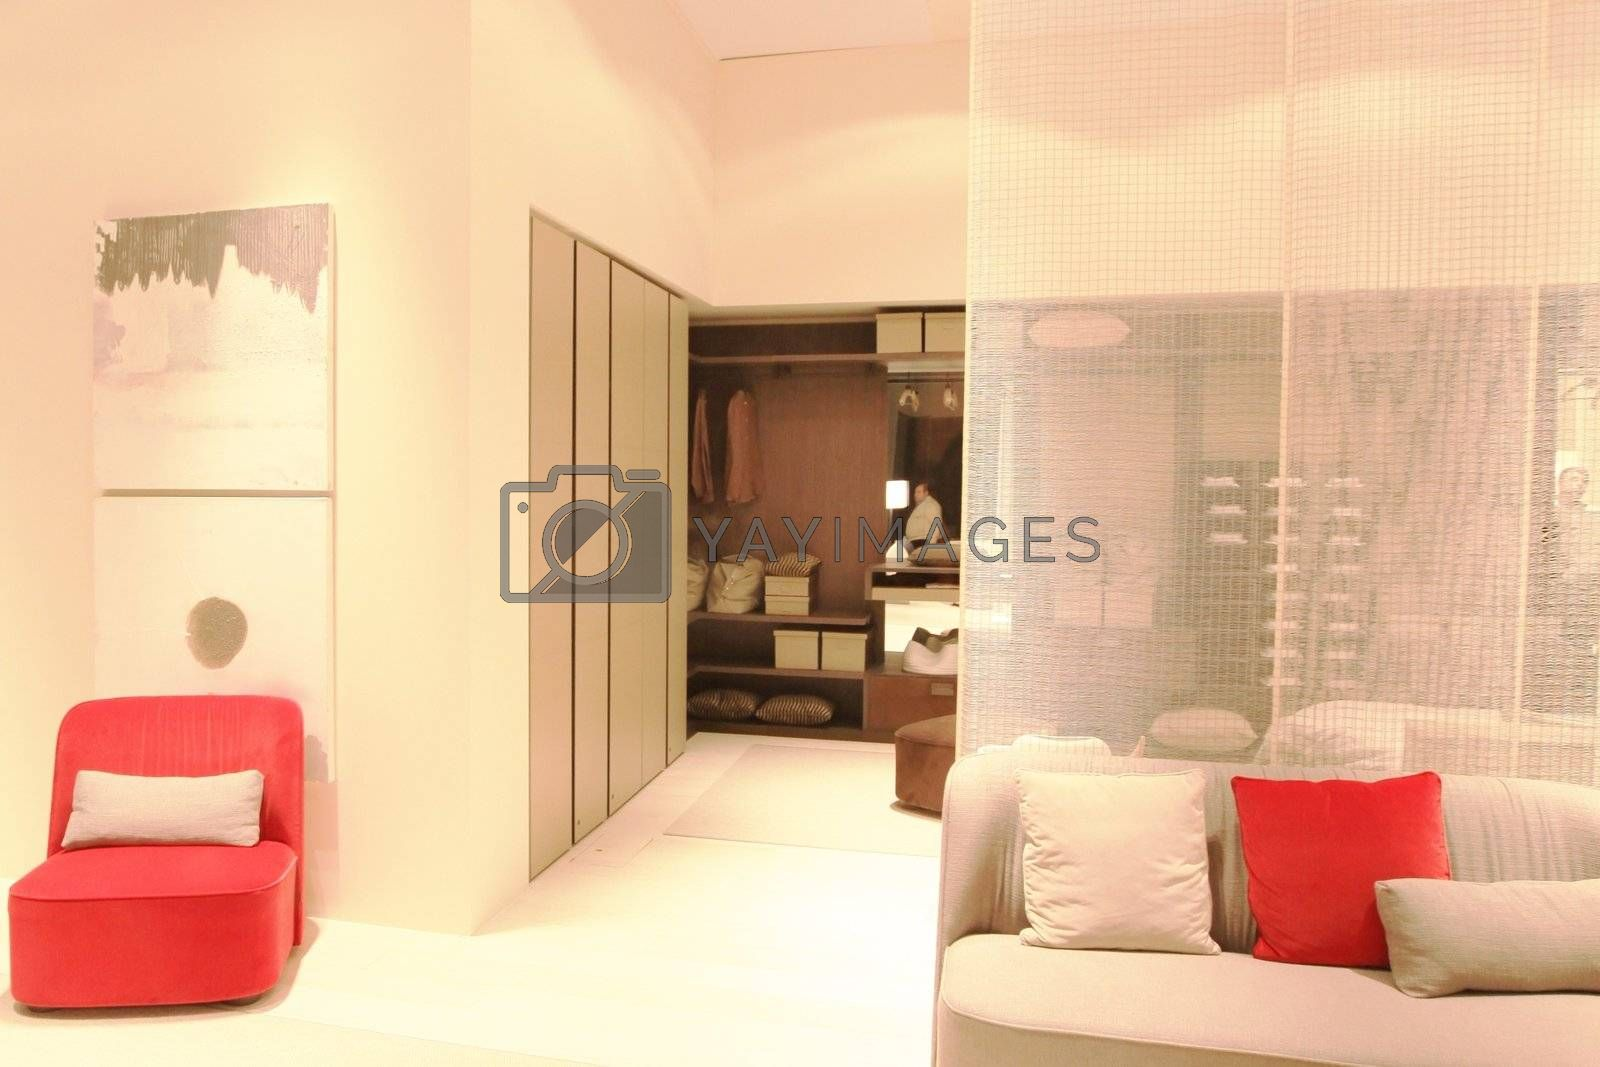 Salone del Mobile 2011, international furnishing accessories exhibition in Milan, Italy.